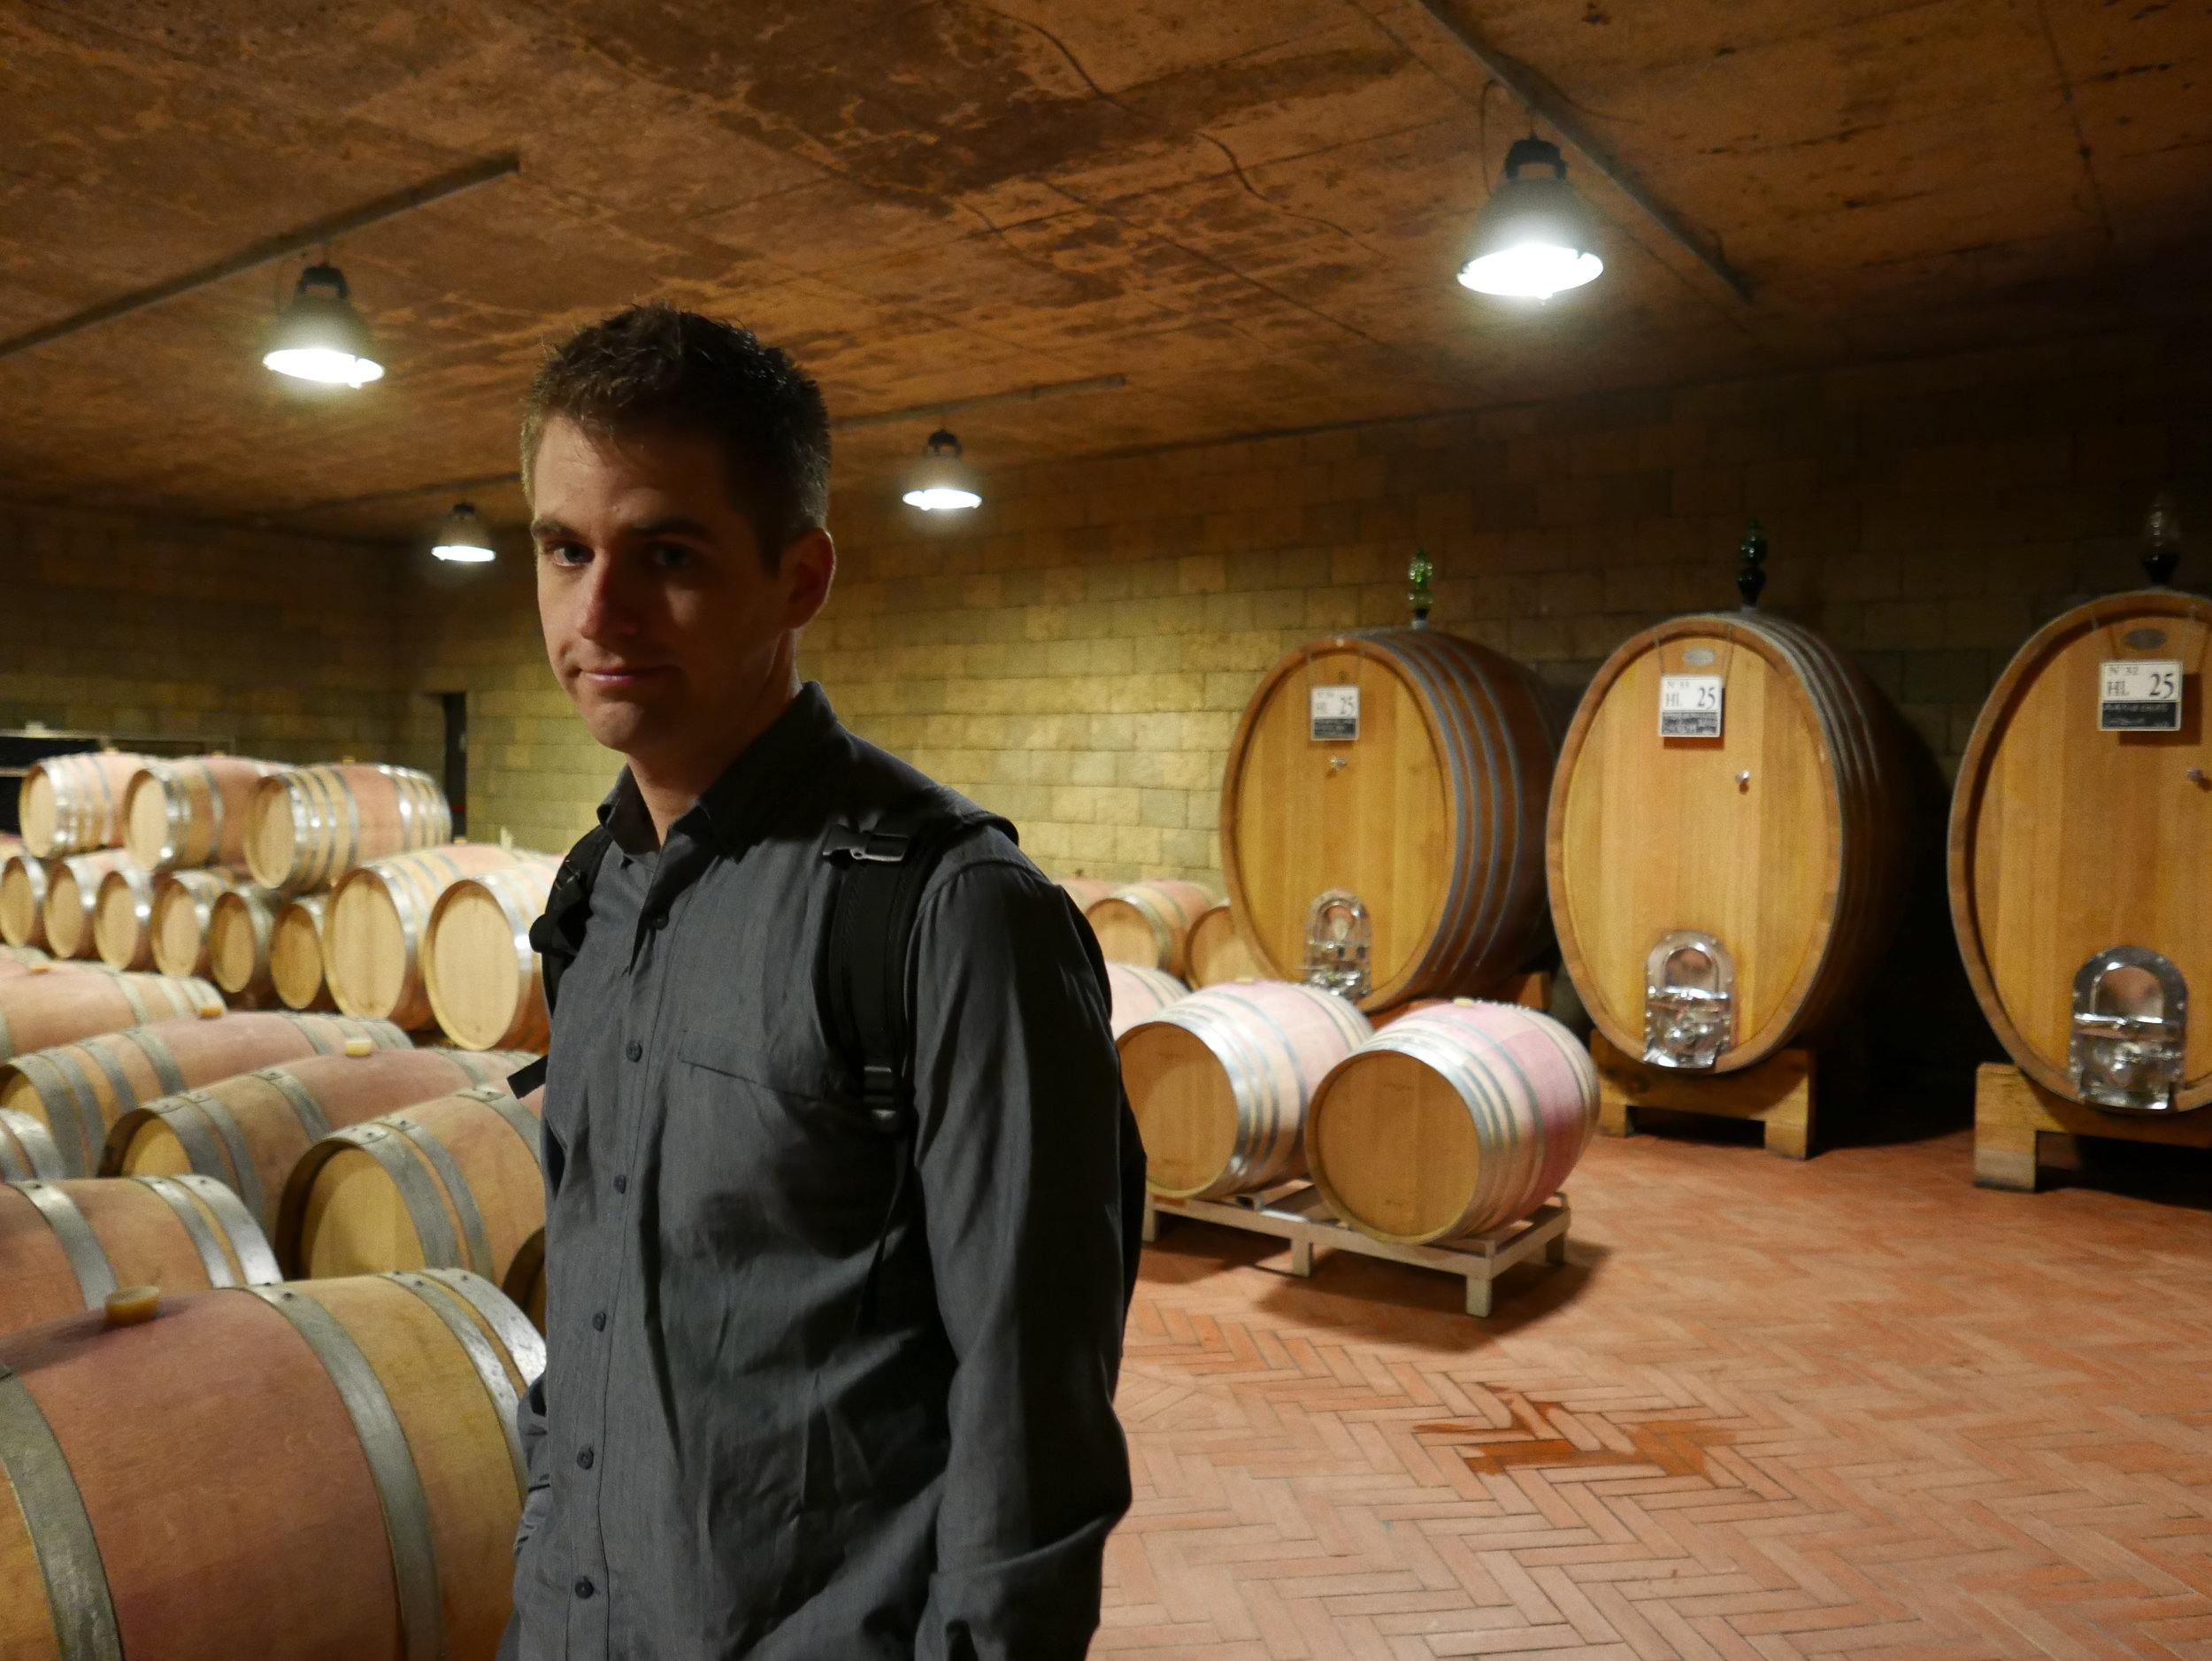 The wine is aged in various barrels.